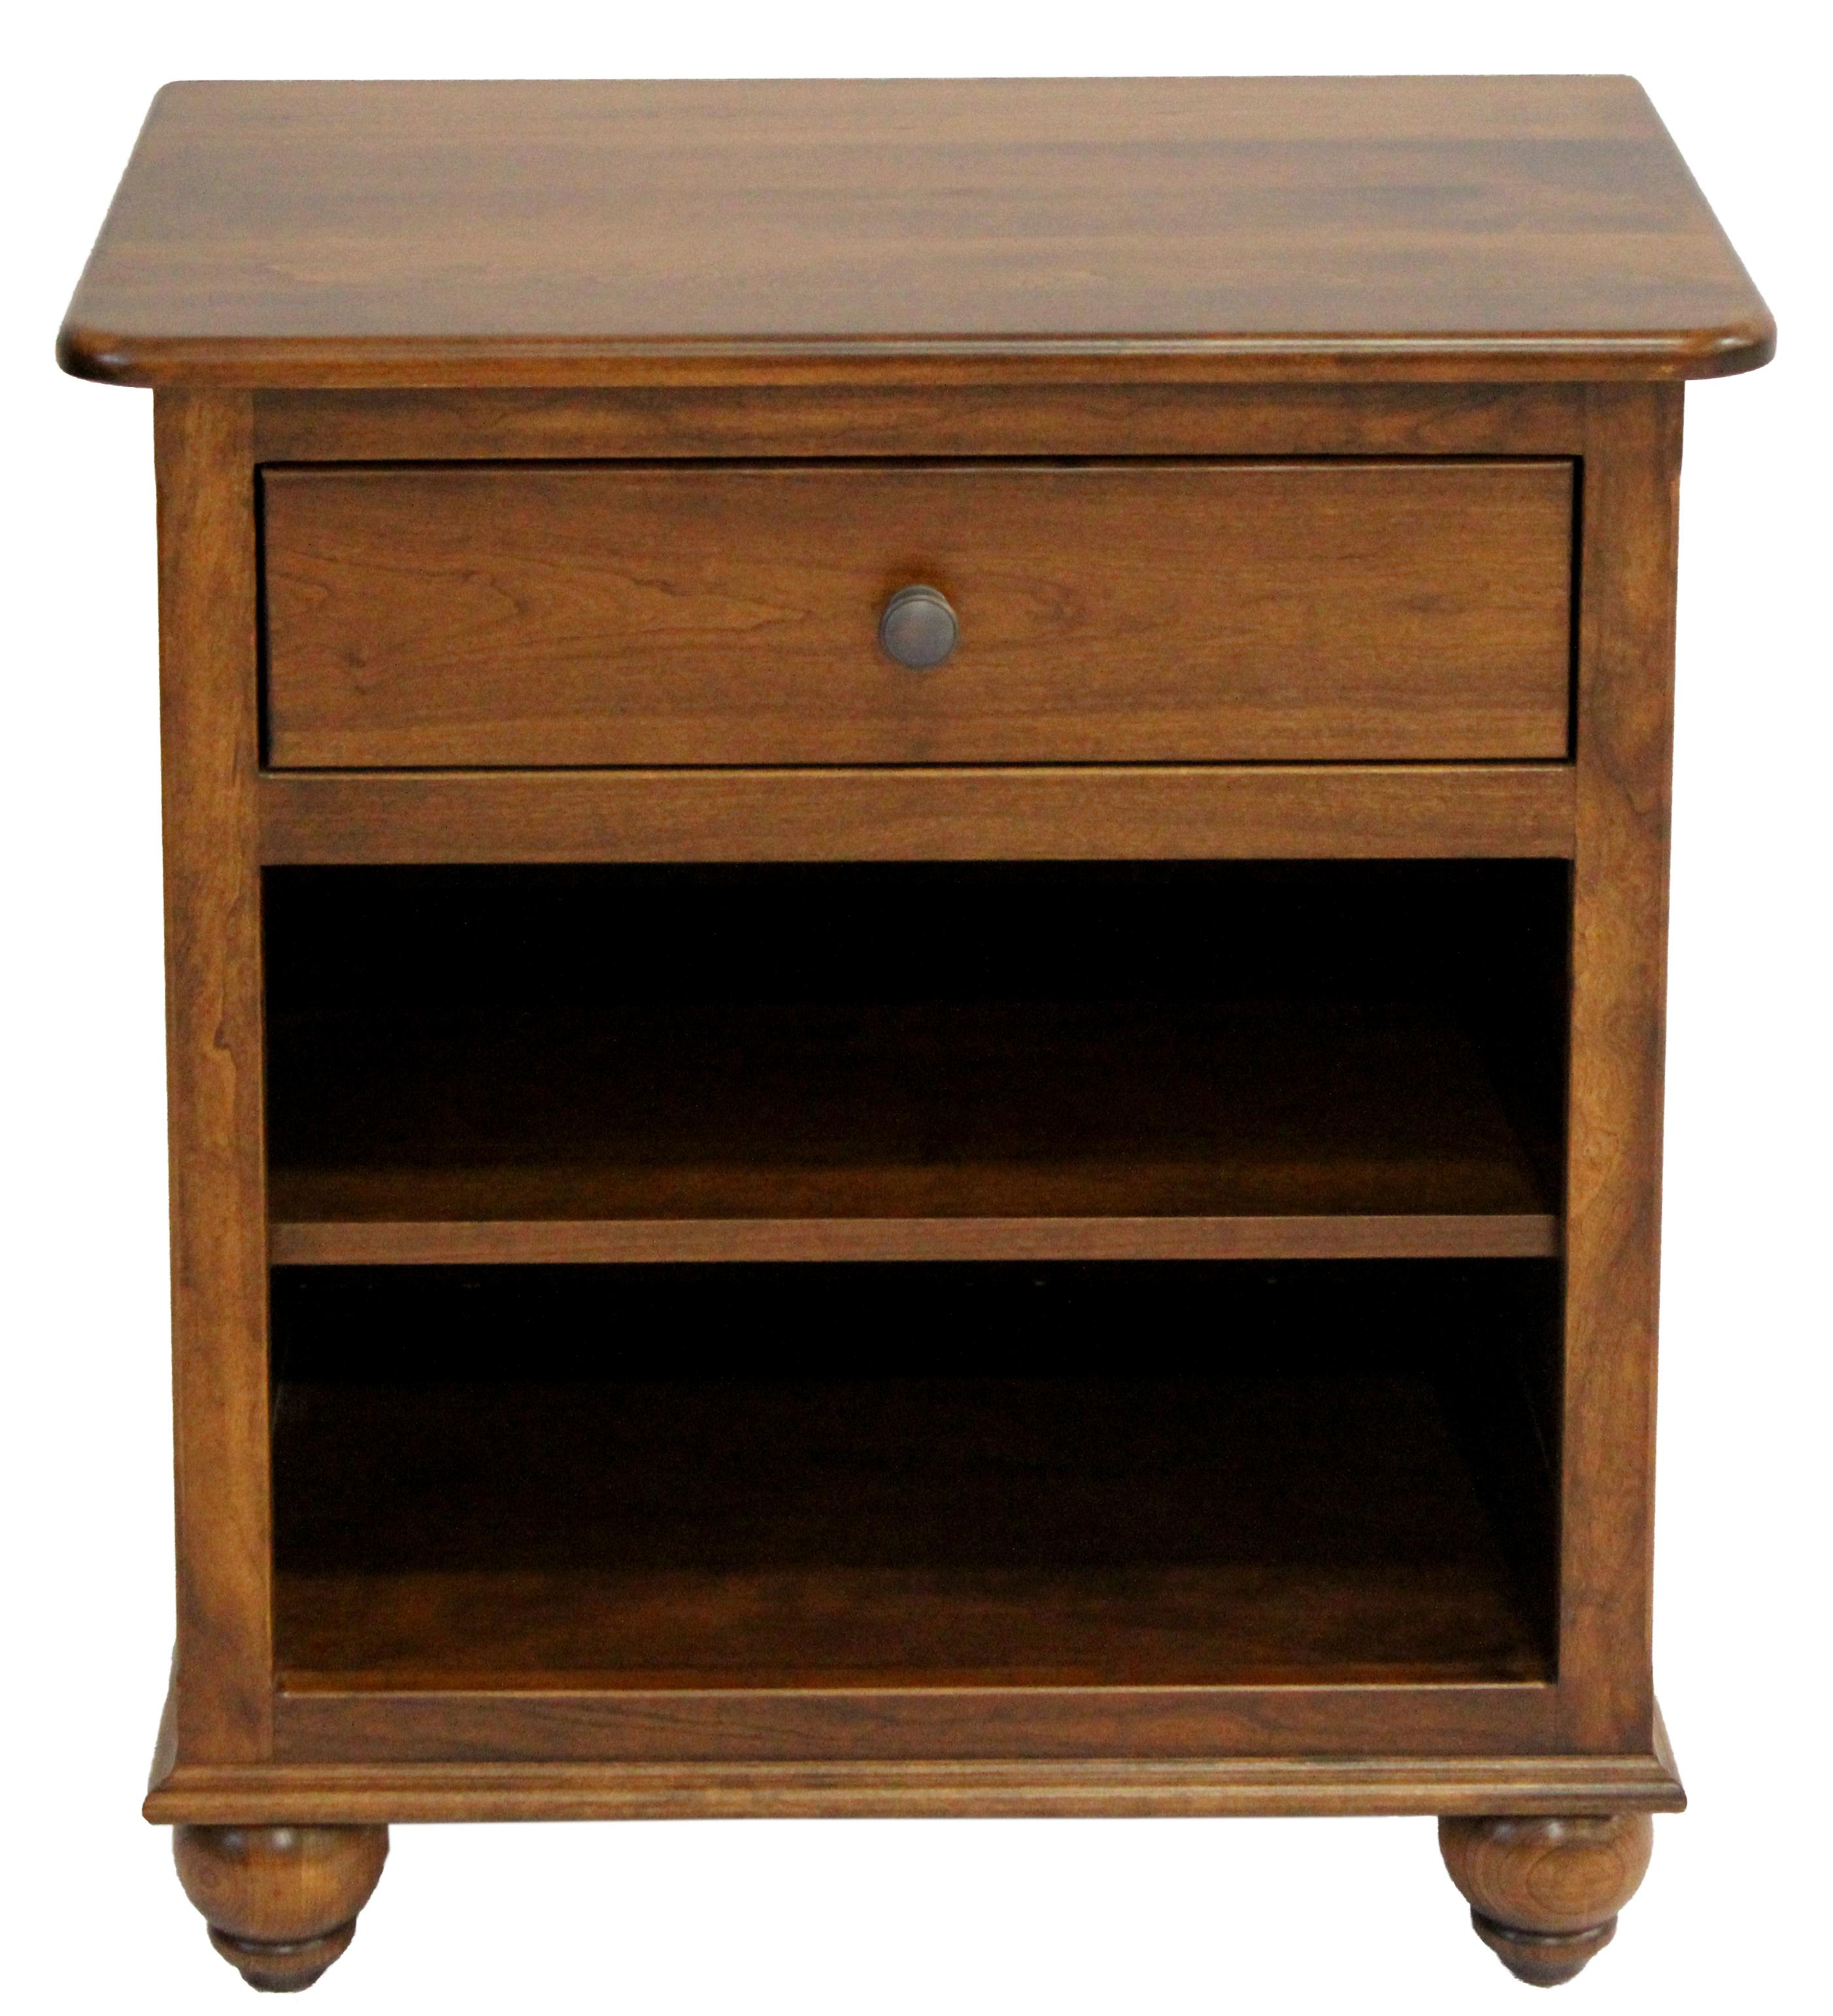 L.J. Gascho Furniture Covington Covington Nightstand - Item Number: 2350-26